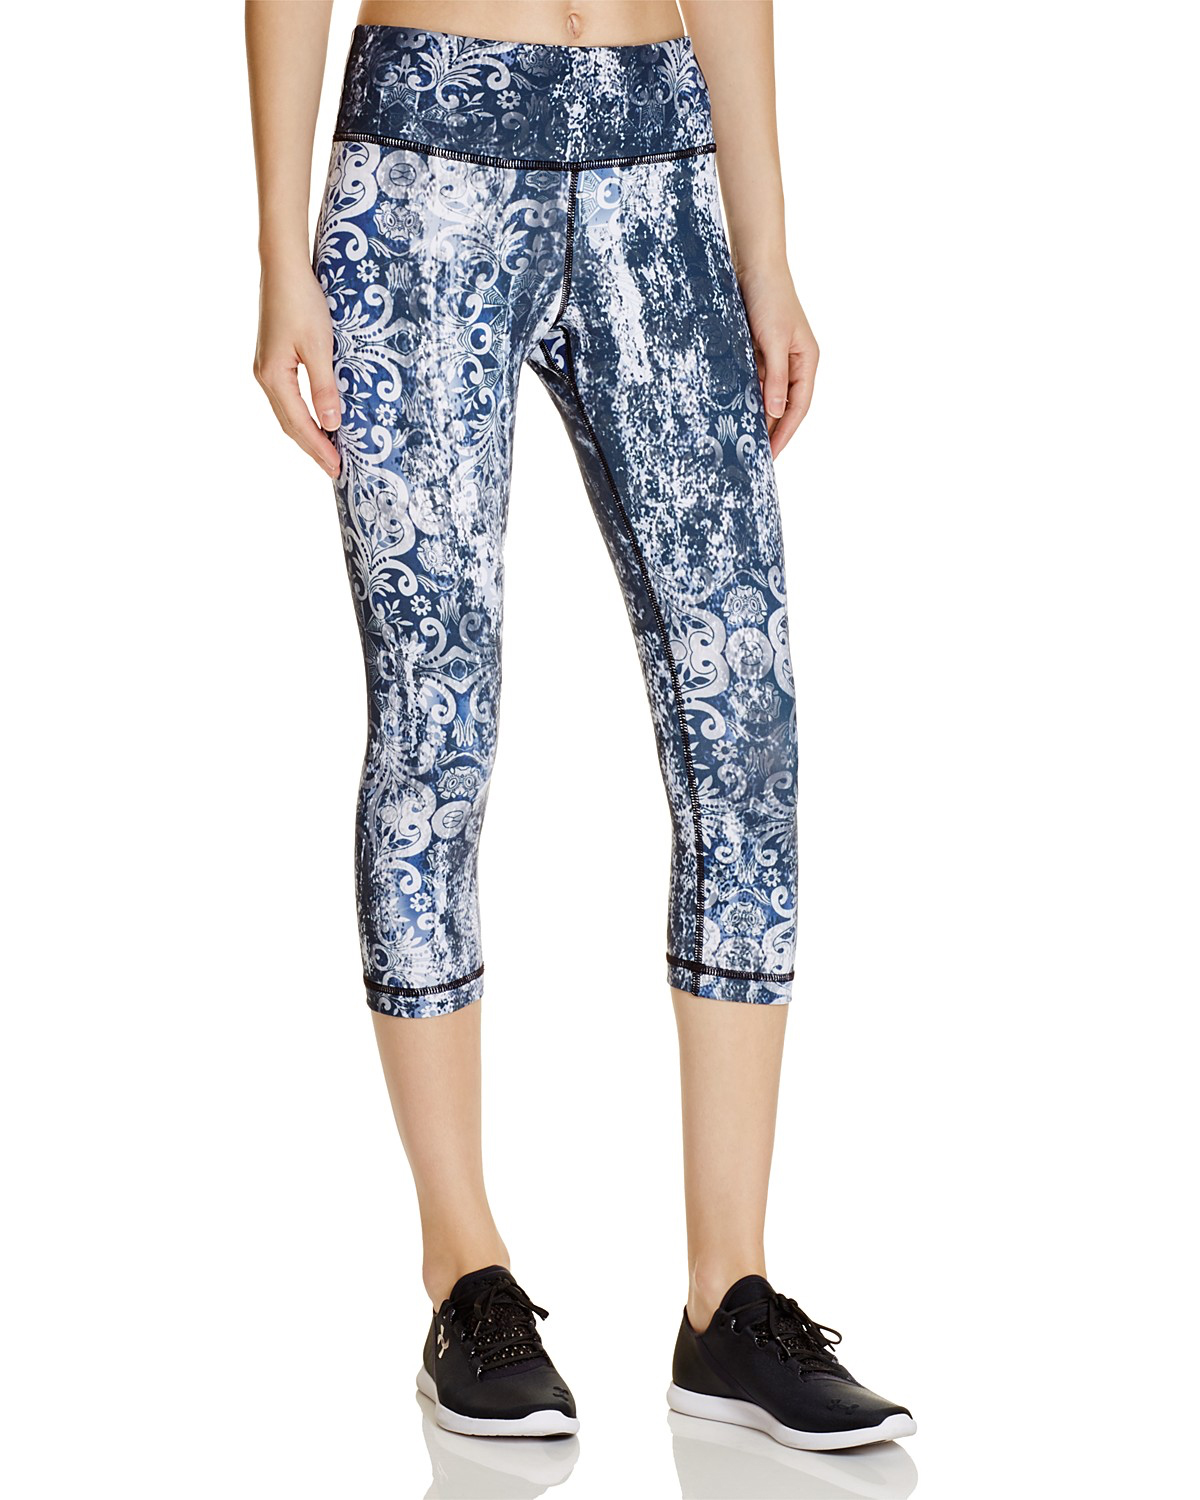 Capri Leggings from Bloomingdale's